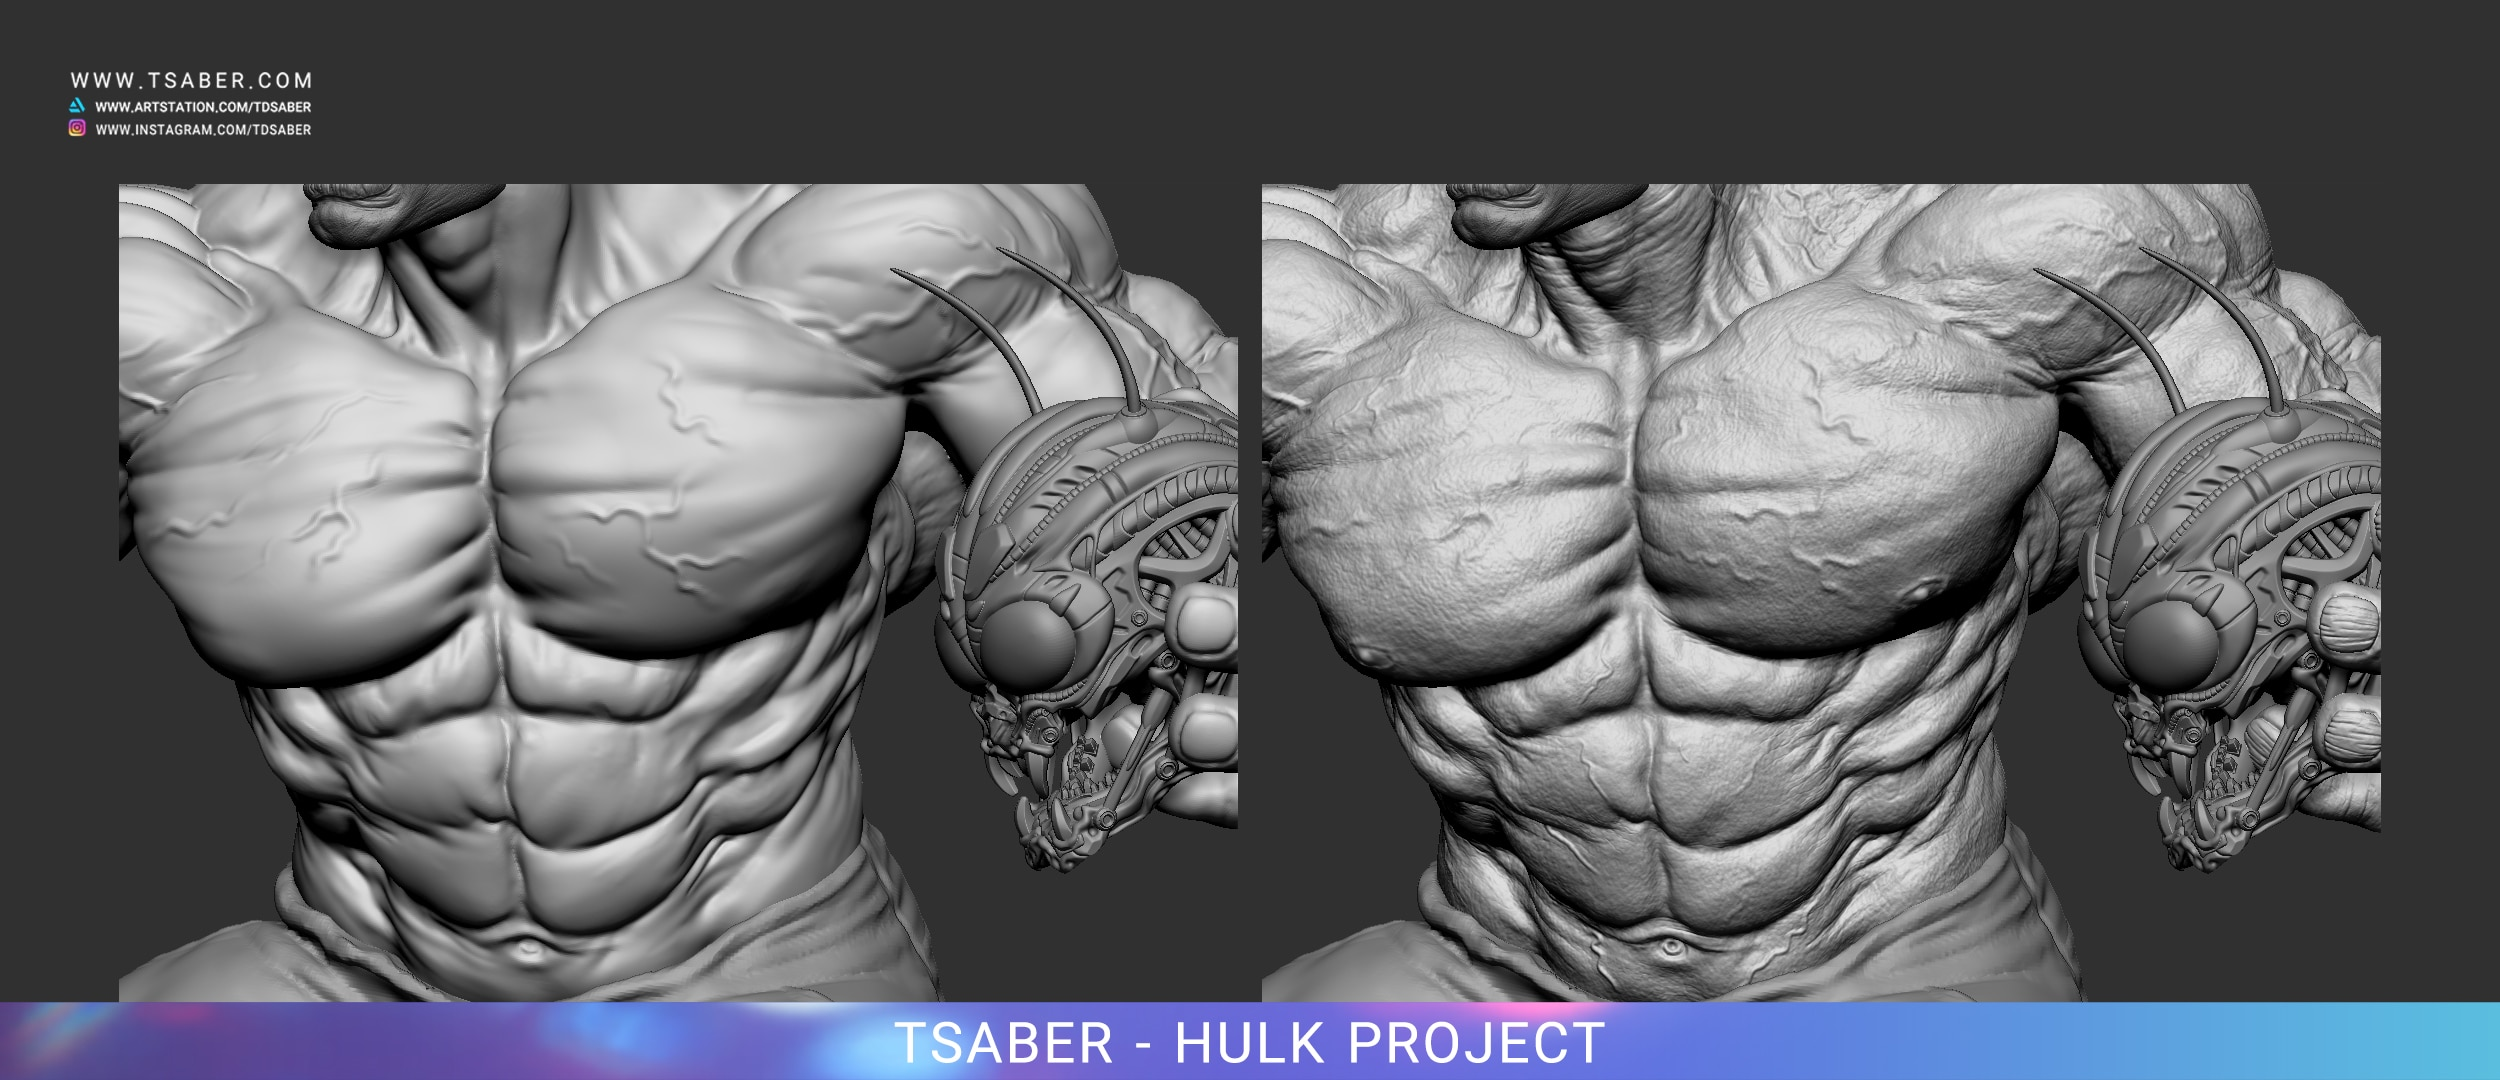 Making of 80's Incredible Hulk Statue - Zbrush 3D Modelling - Tsaber